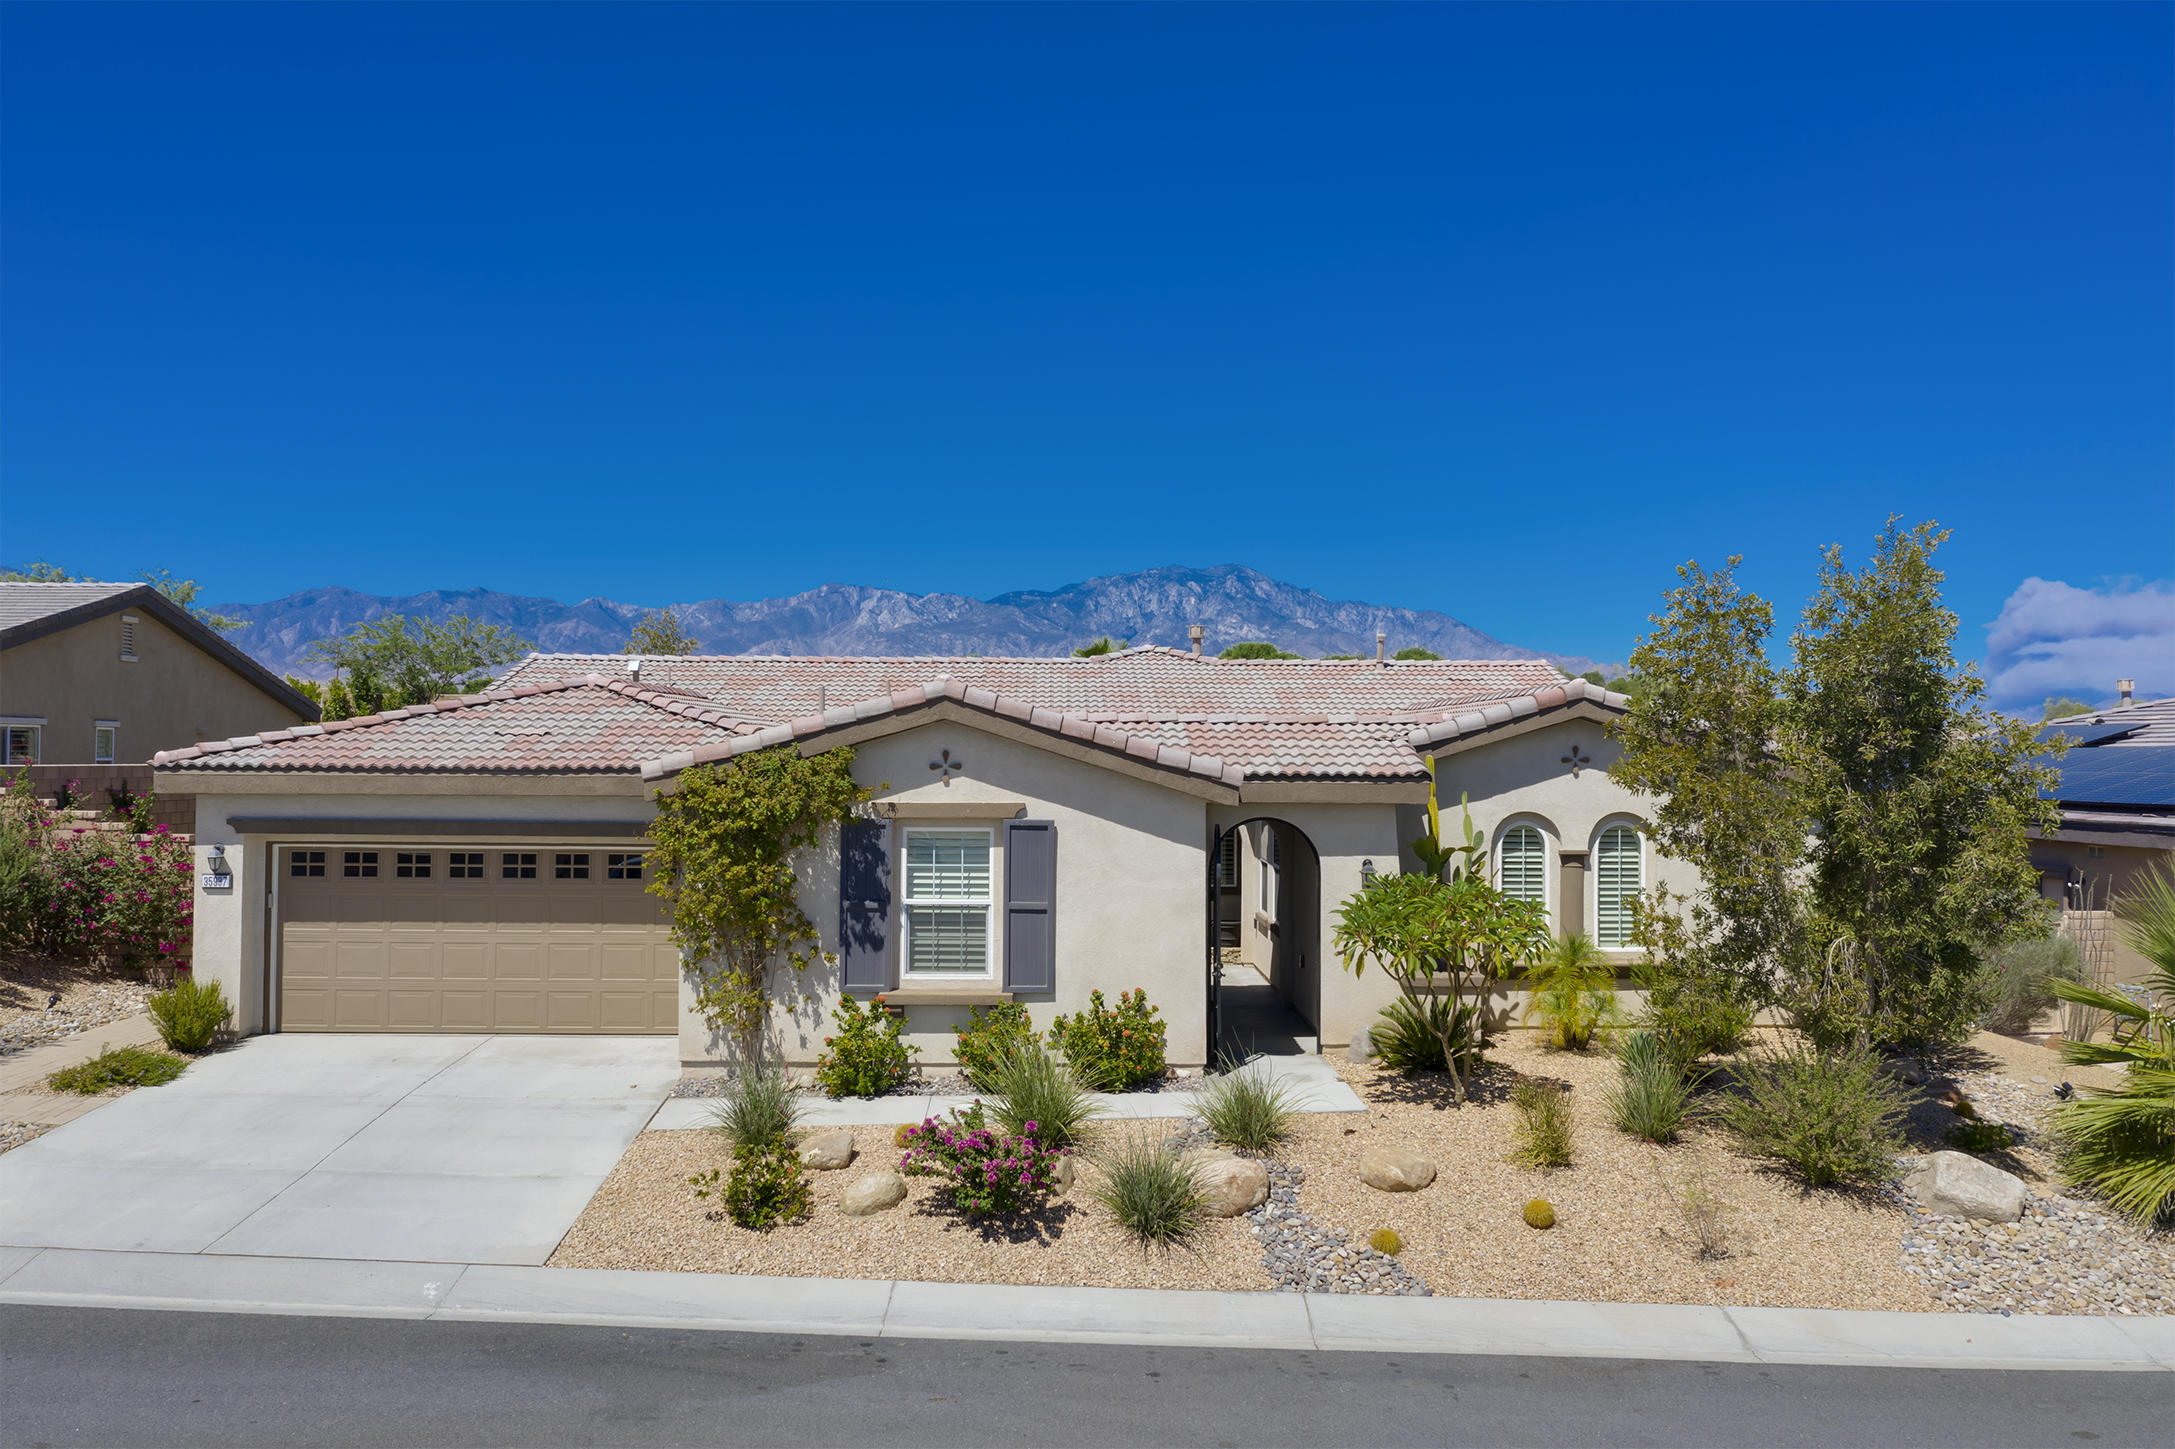 Photo of 35937 Renoir Place, Palm Desert, CA 92211